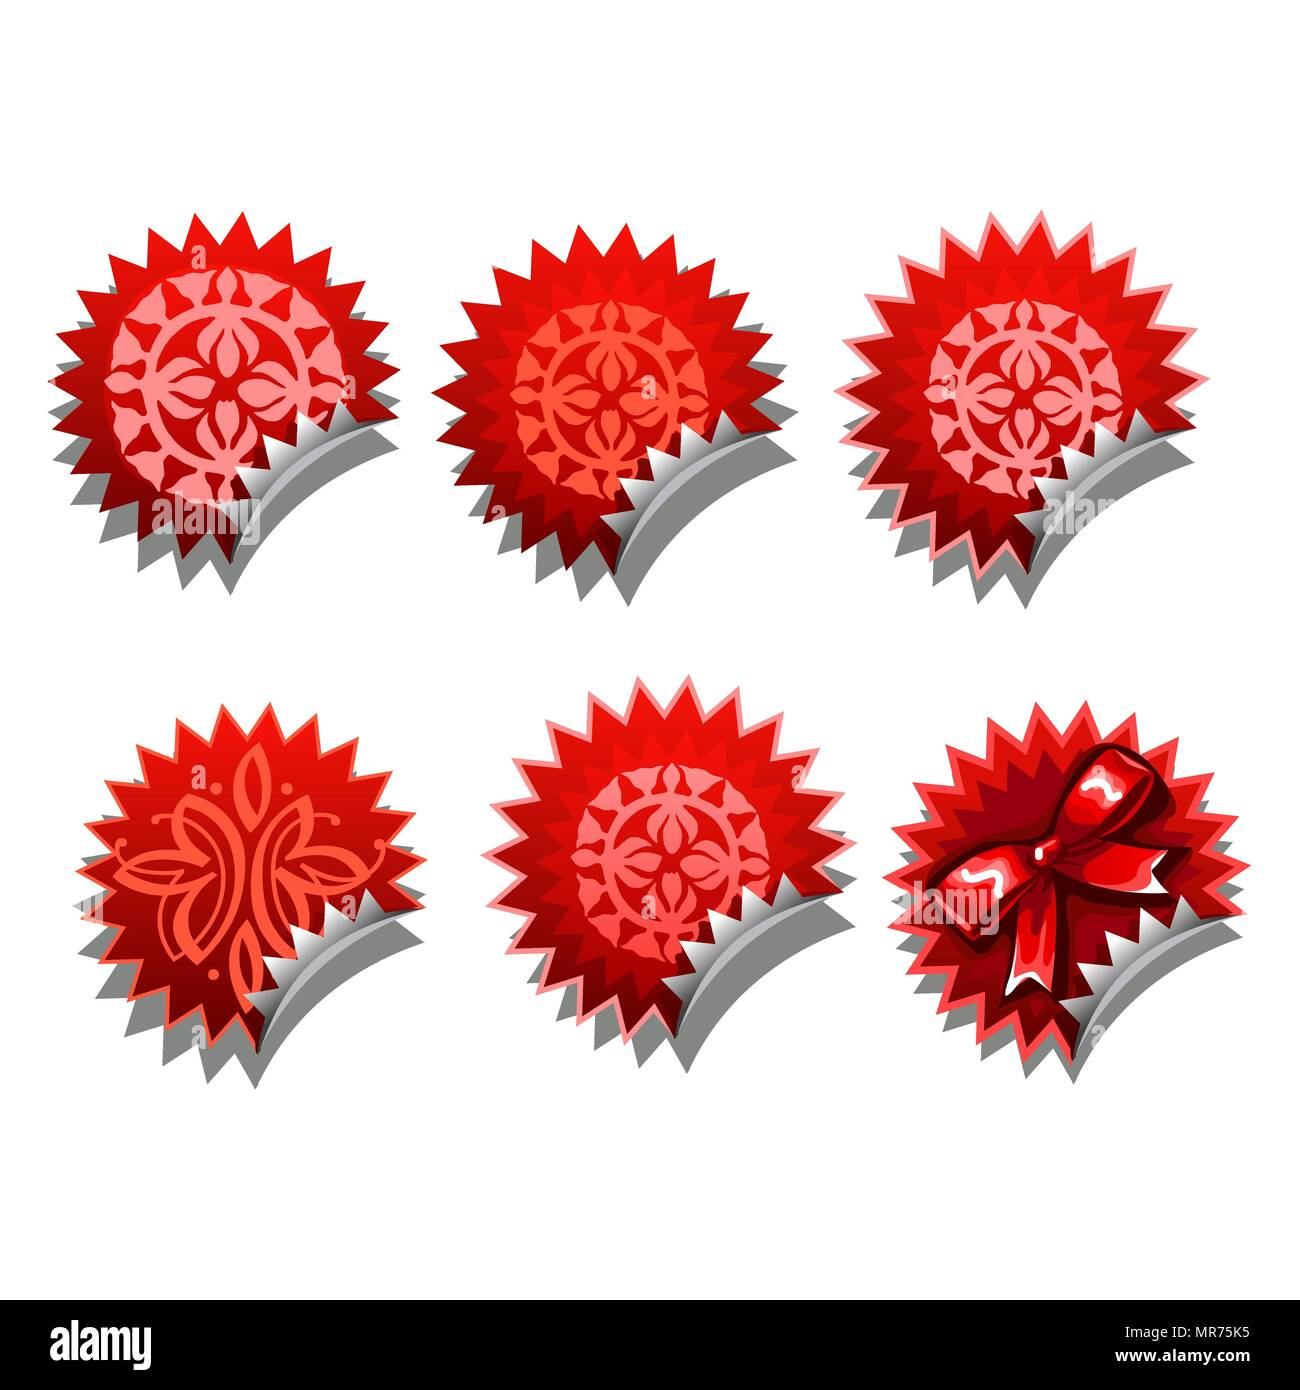 Set of red stickers with a bowknot isolated on a white background. Cartoon vector close-up illustration. - Stock Vector